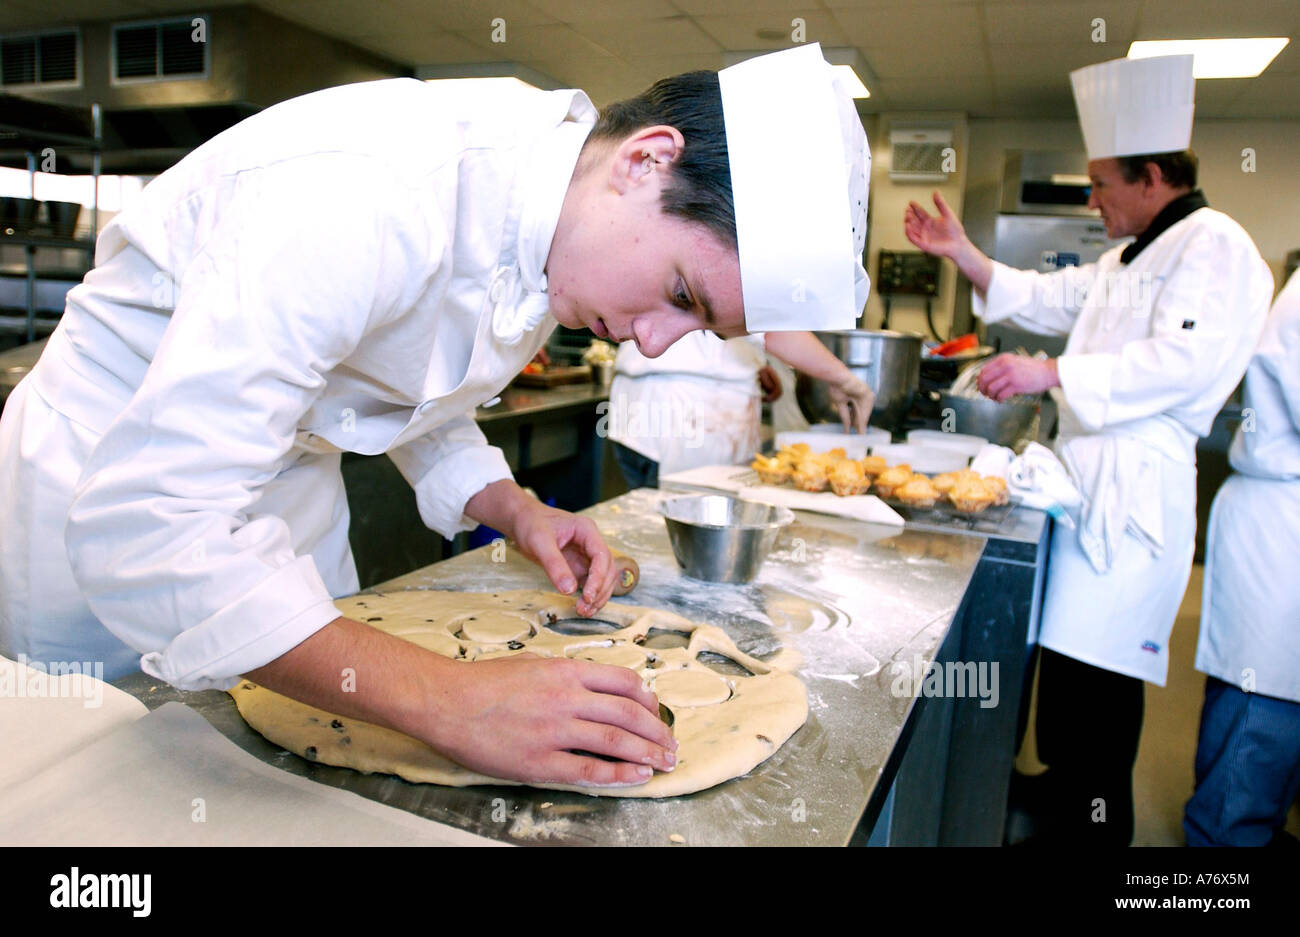 Young man studying catering makes pastry in a class in a modern kitchen - Stock Image